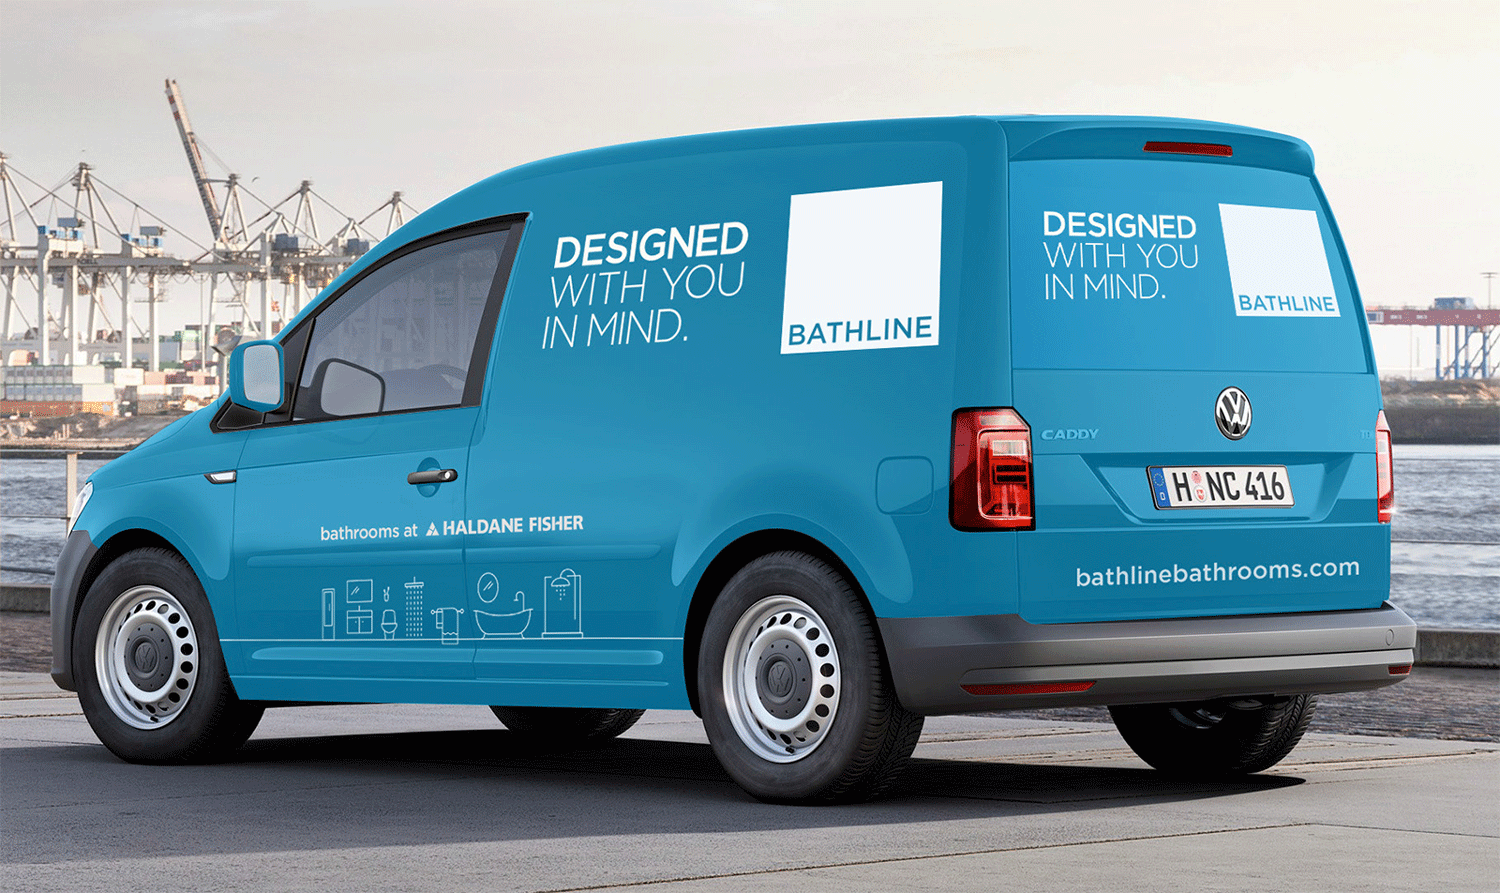 Bathline Delivery Van